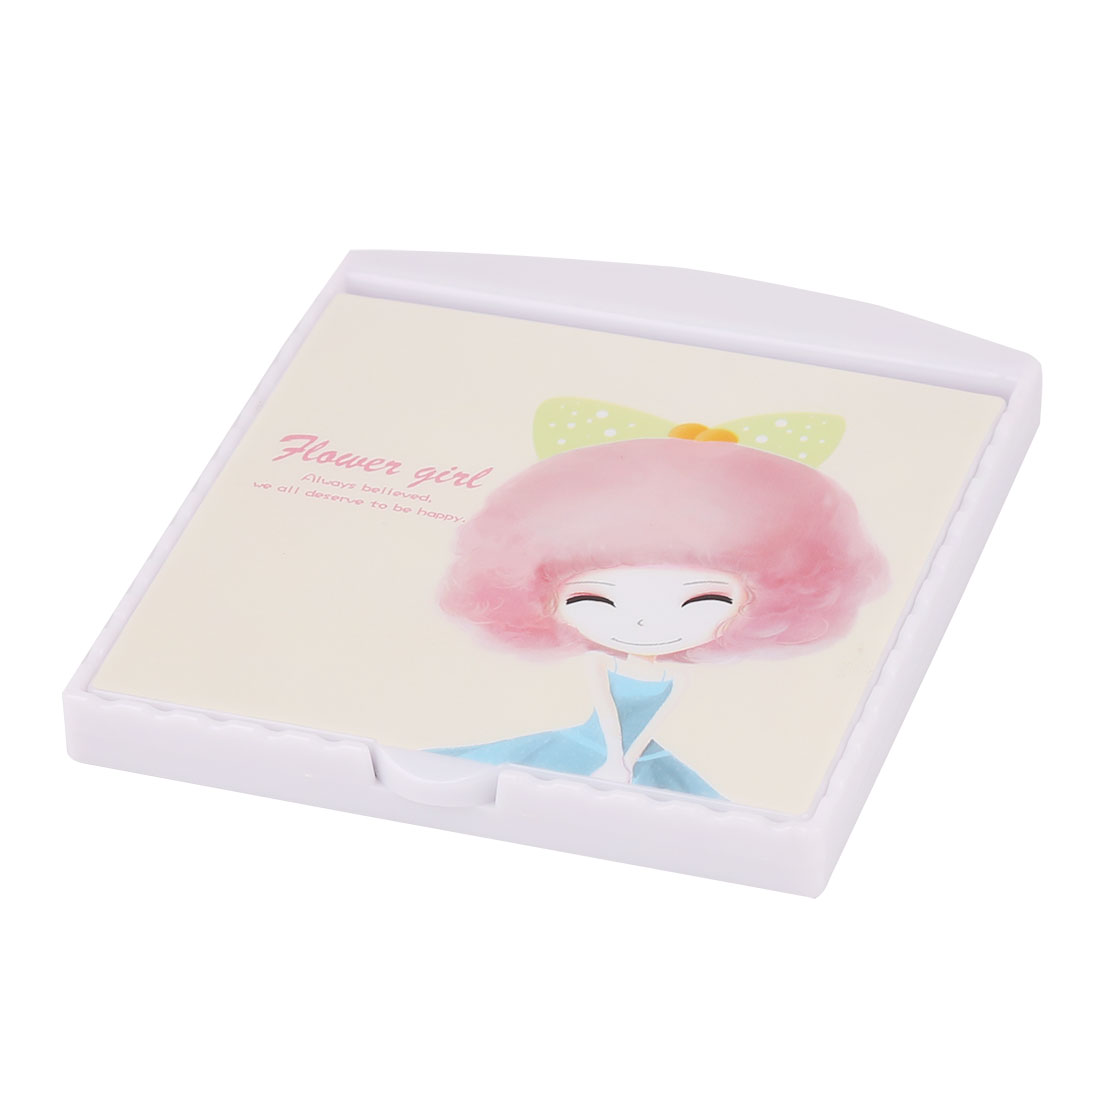 Party Plastic Rectangle Shaped Folding Mini Makeup Cosmetic Mirror Comb 2 in 1